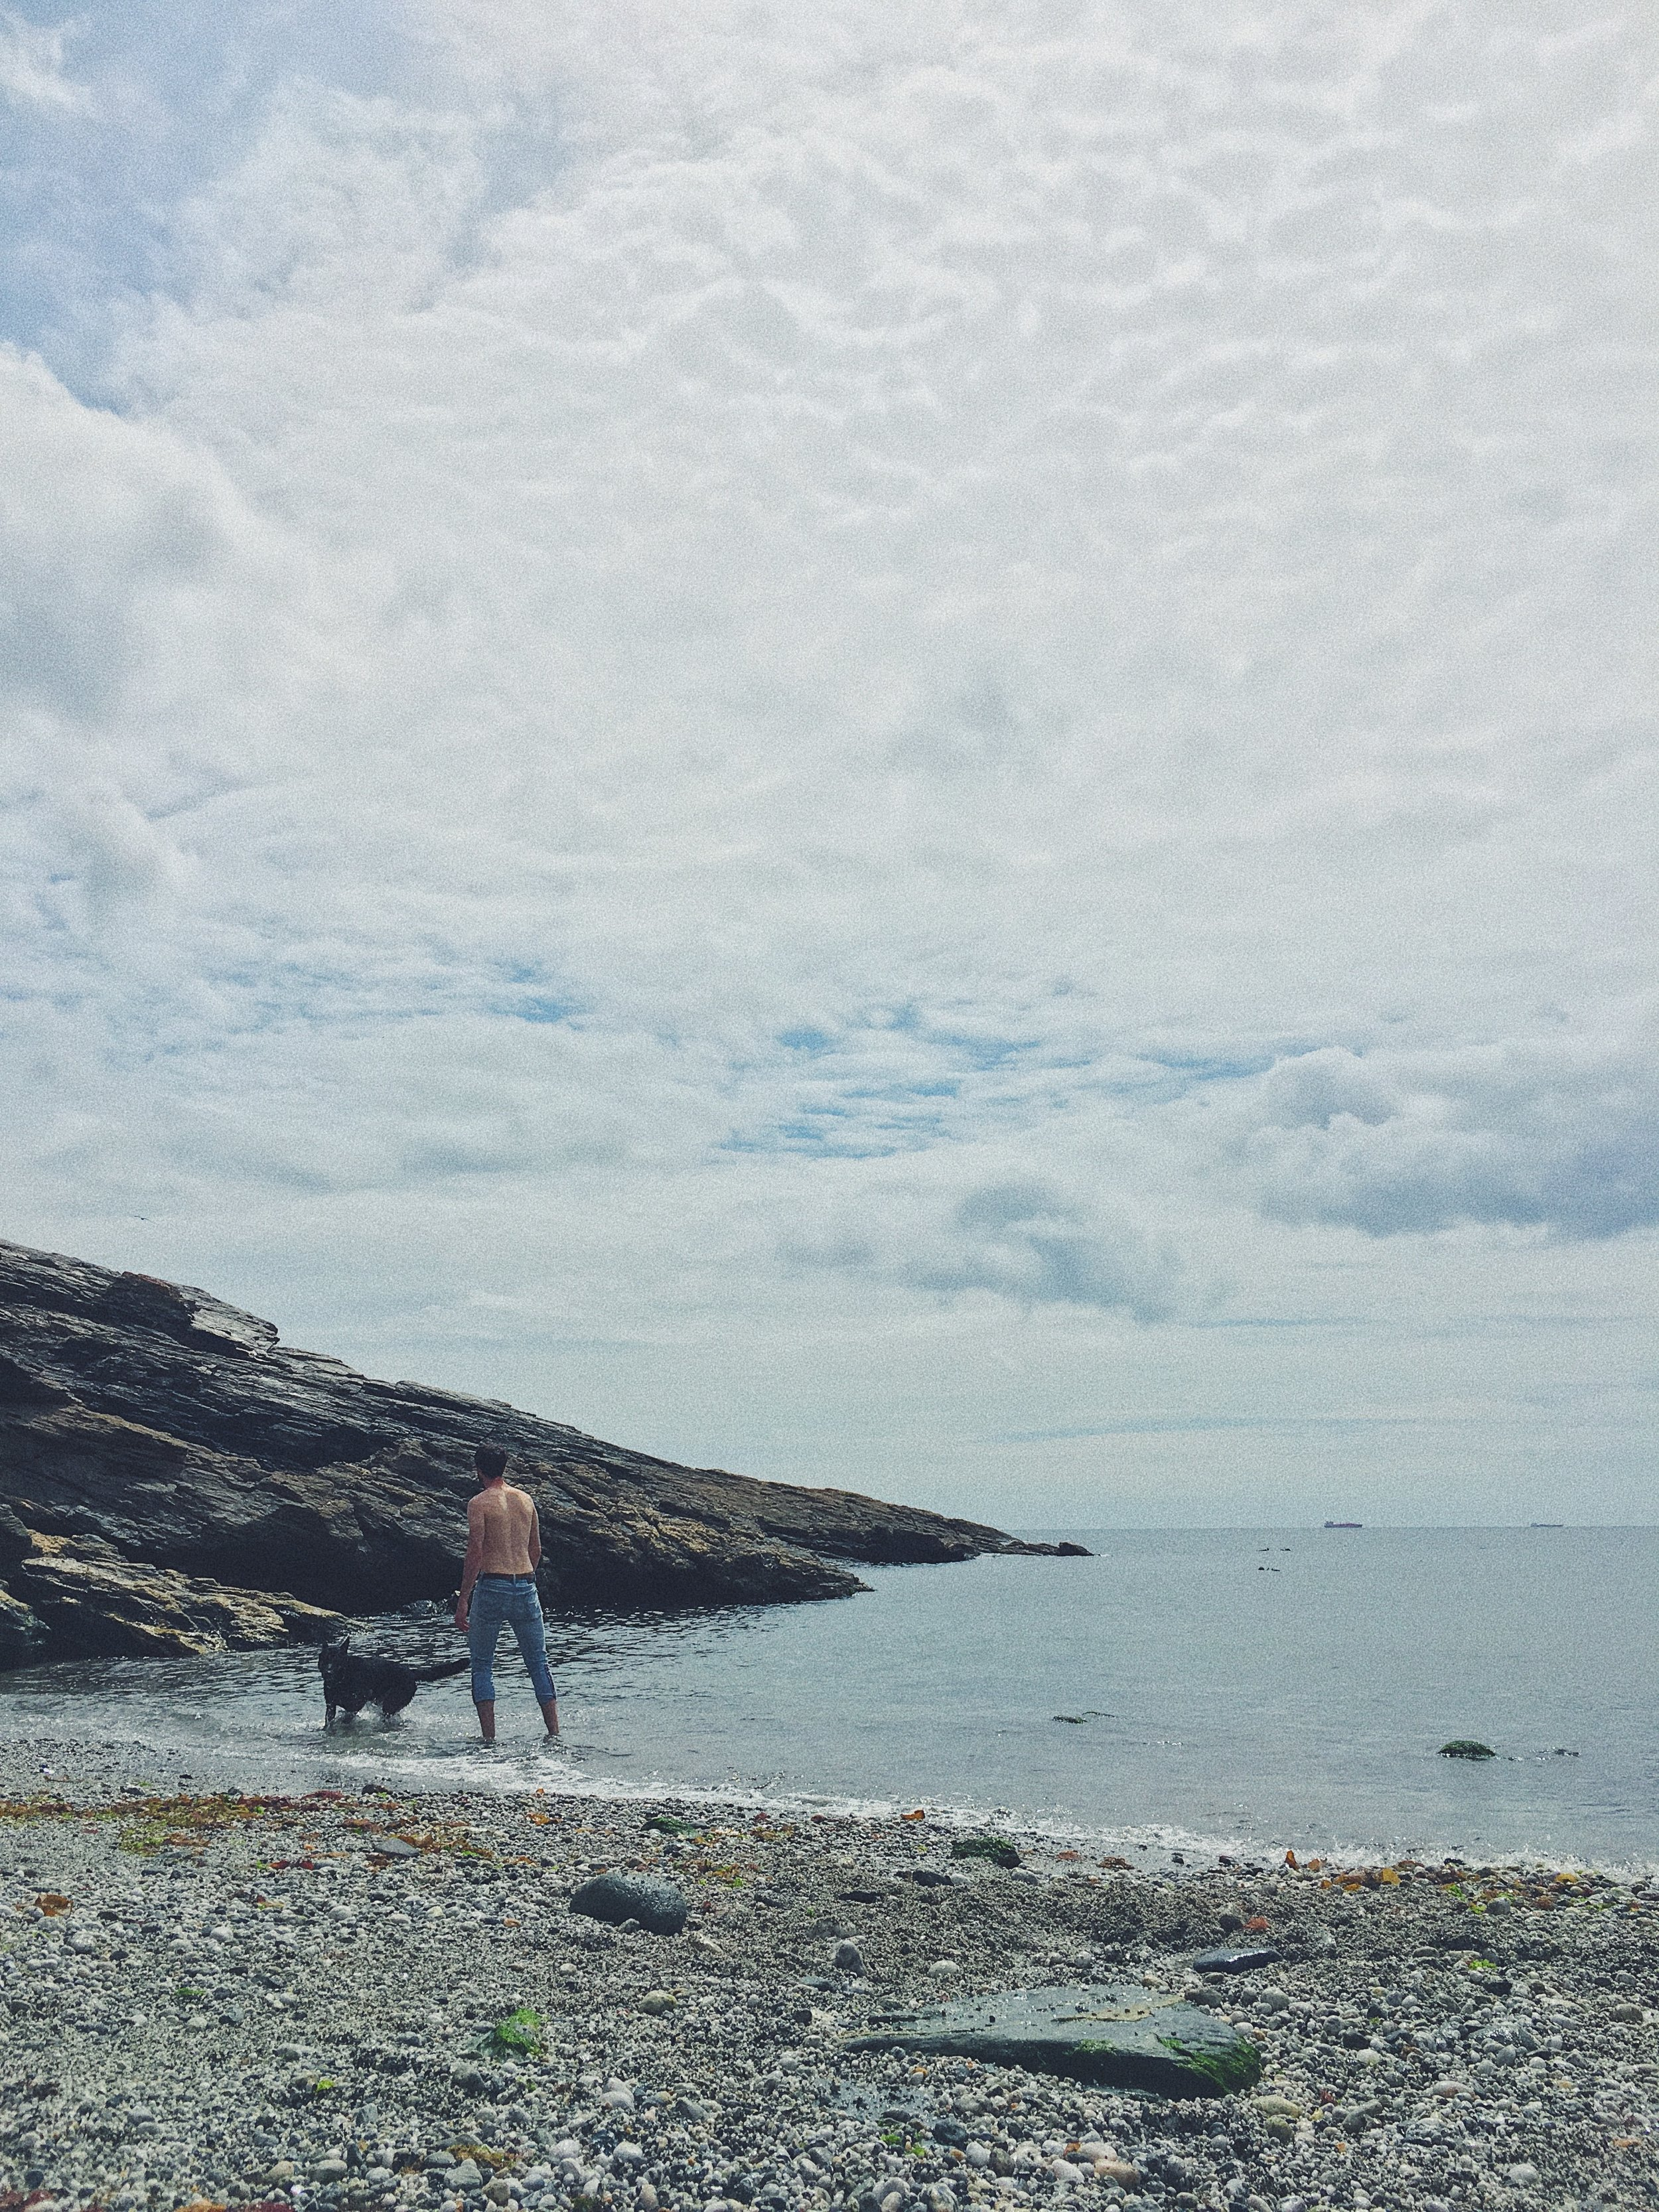 Downtime at Prussia Cove on The Lizard Peninsular